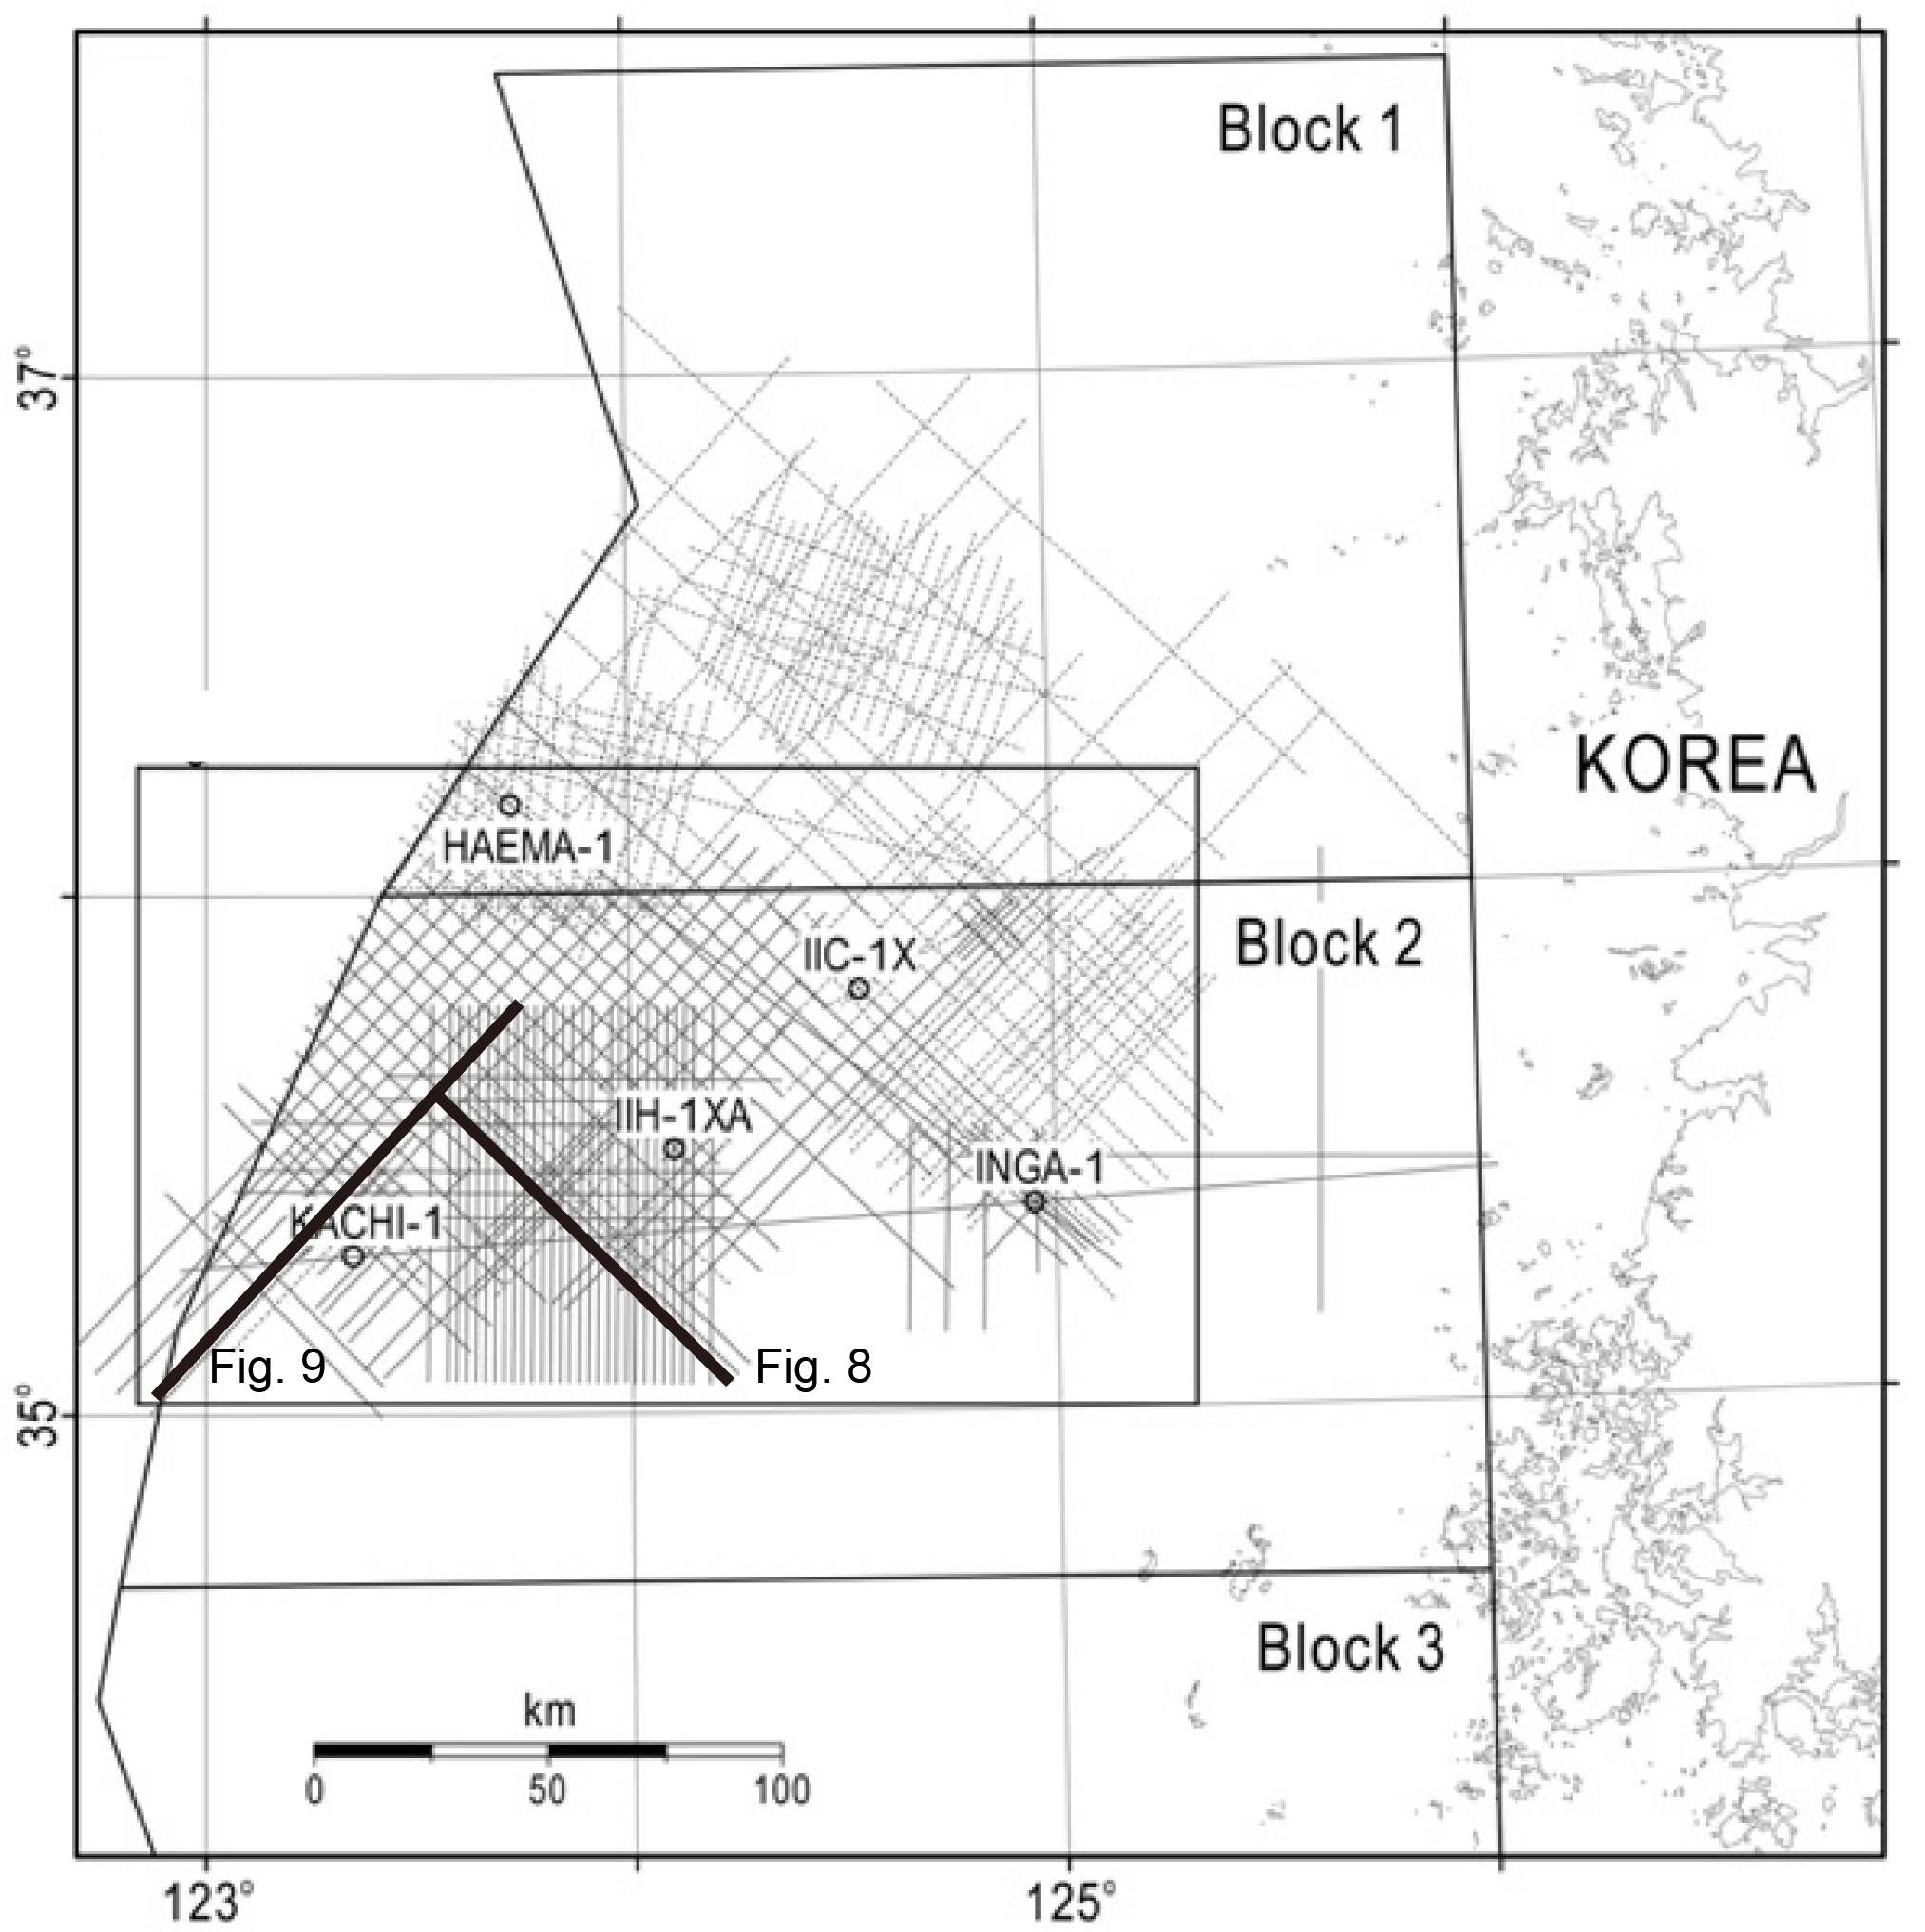 Locations of multi-channel seismic profiles and exploratory wells in the Gunsan Basin